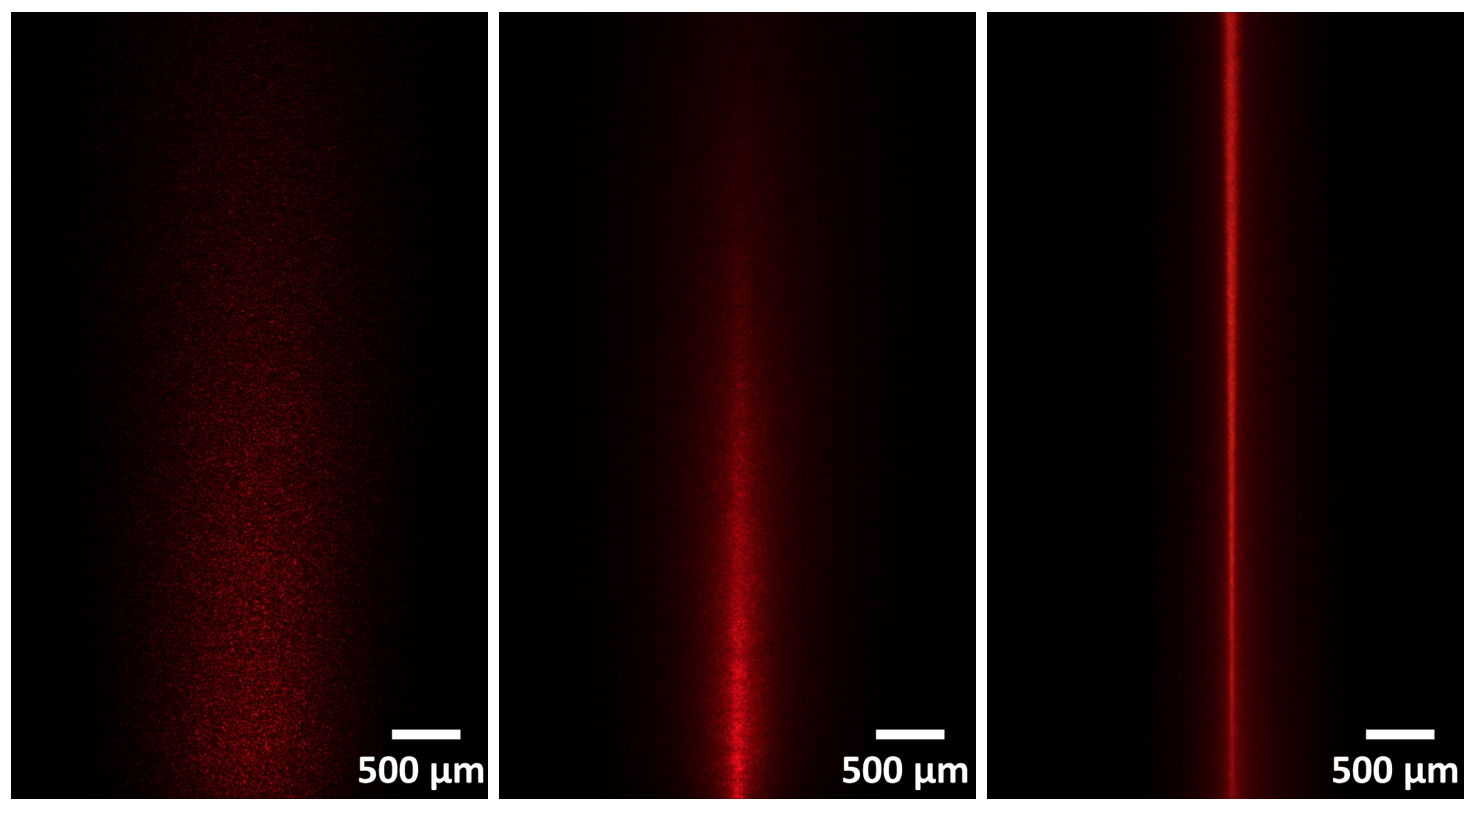 Three images showing, on the left, the most dispersion and on the right the least.